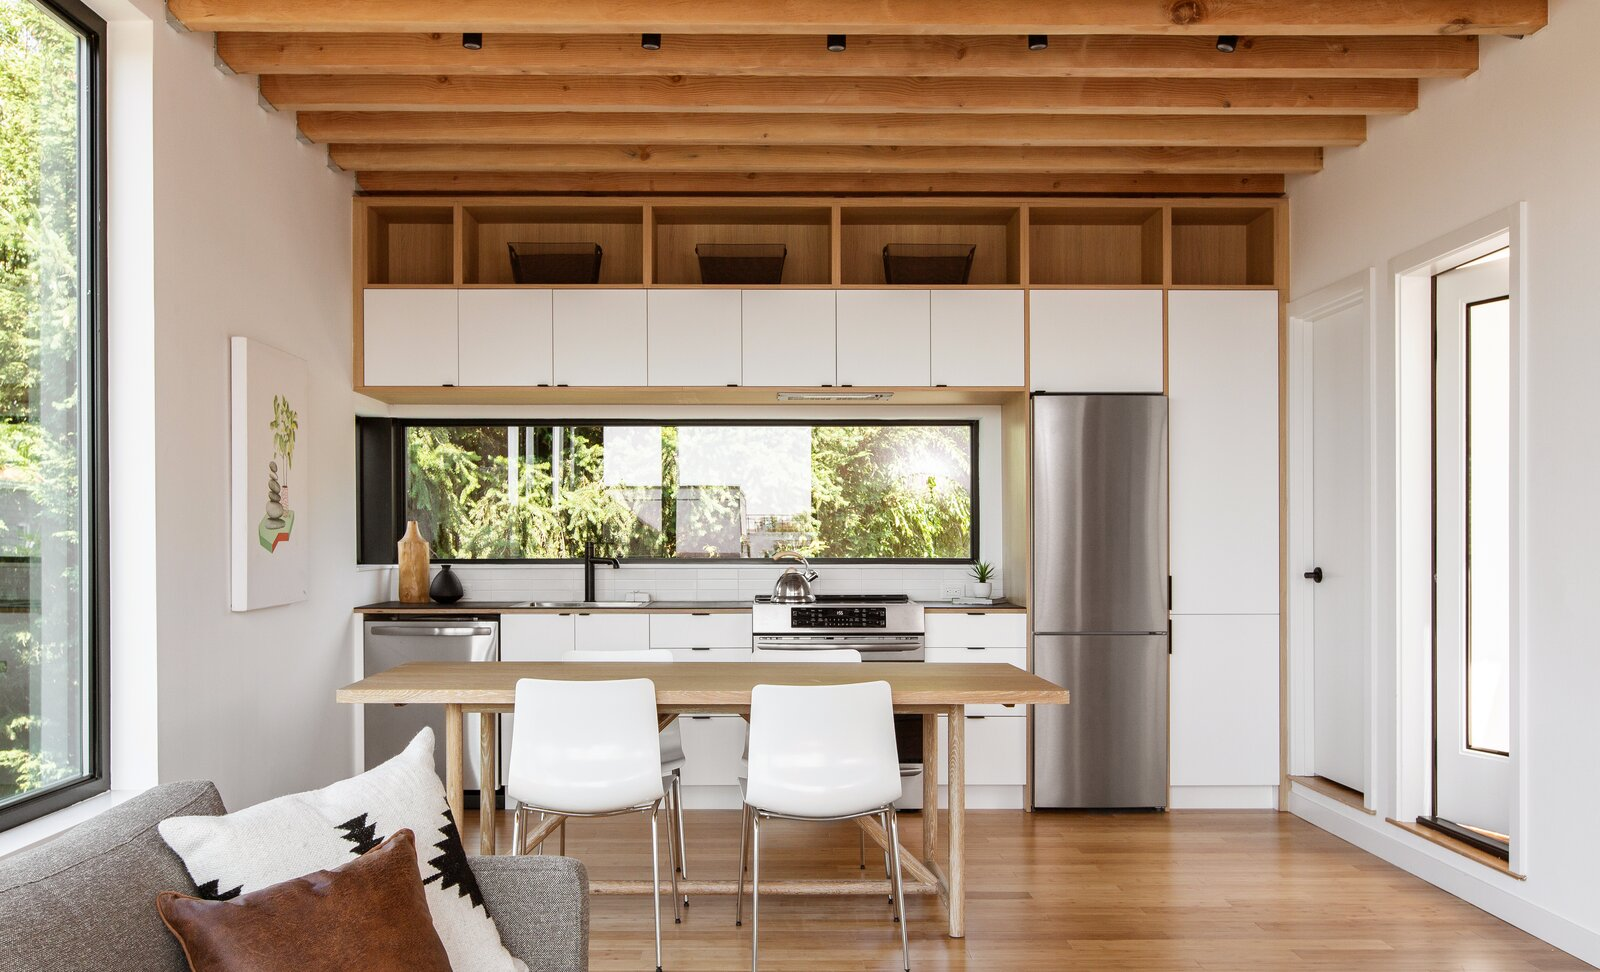 Kitchen in The Lookout by Hybrid Architecture